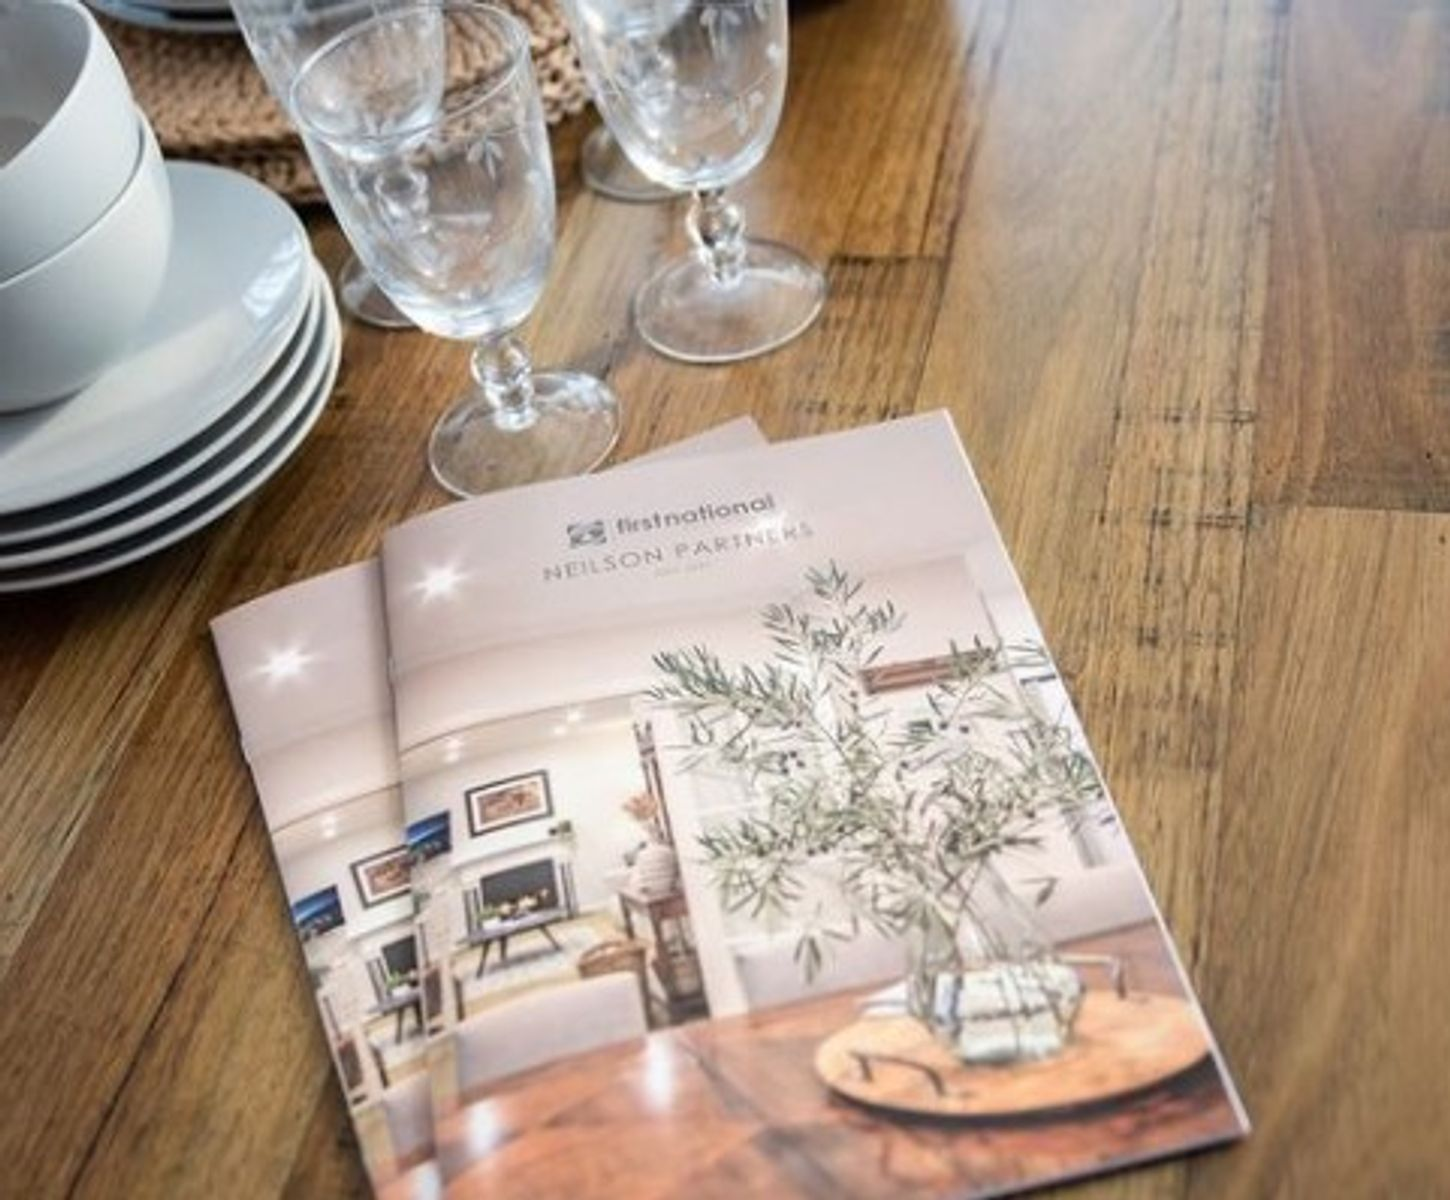 property and lifestyle magazine on timber table